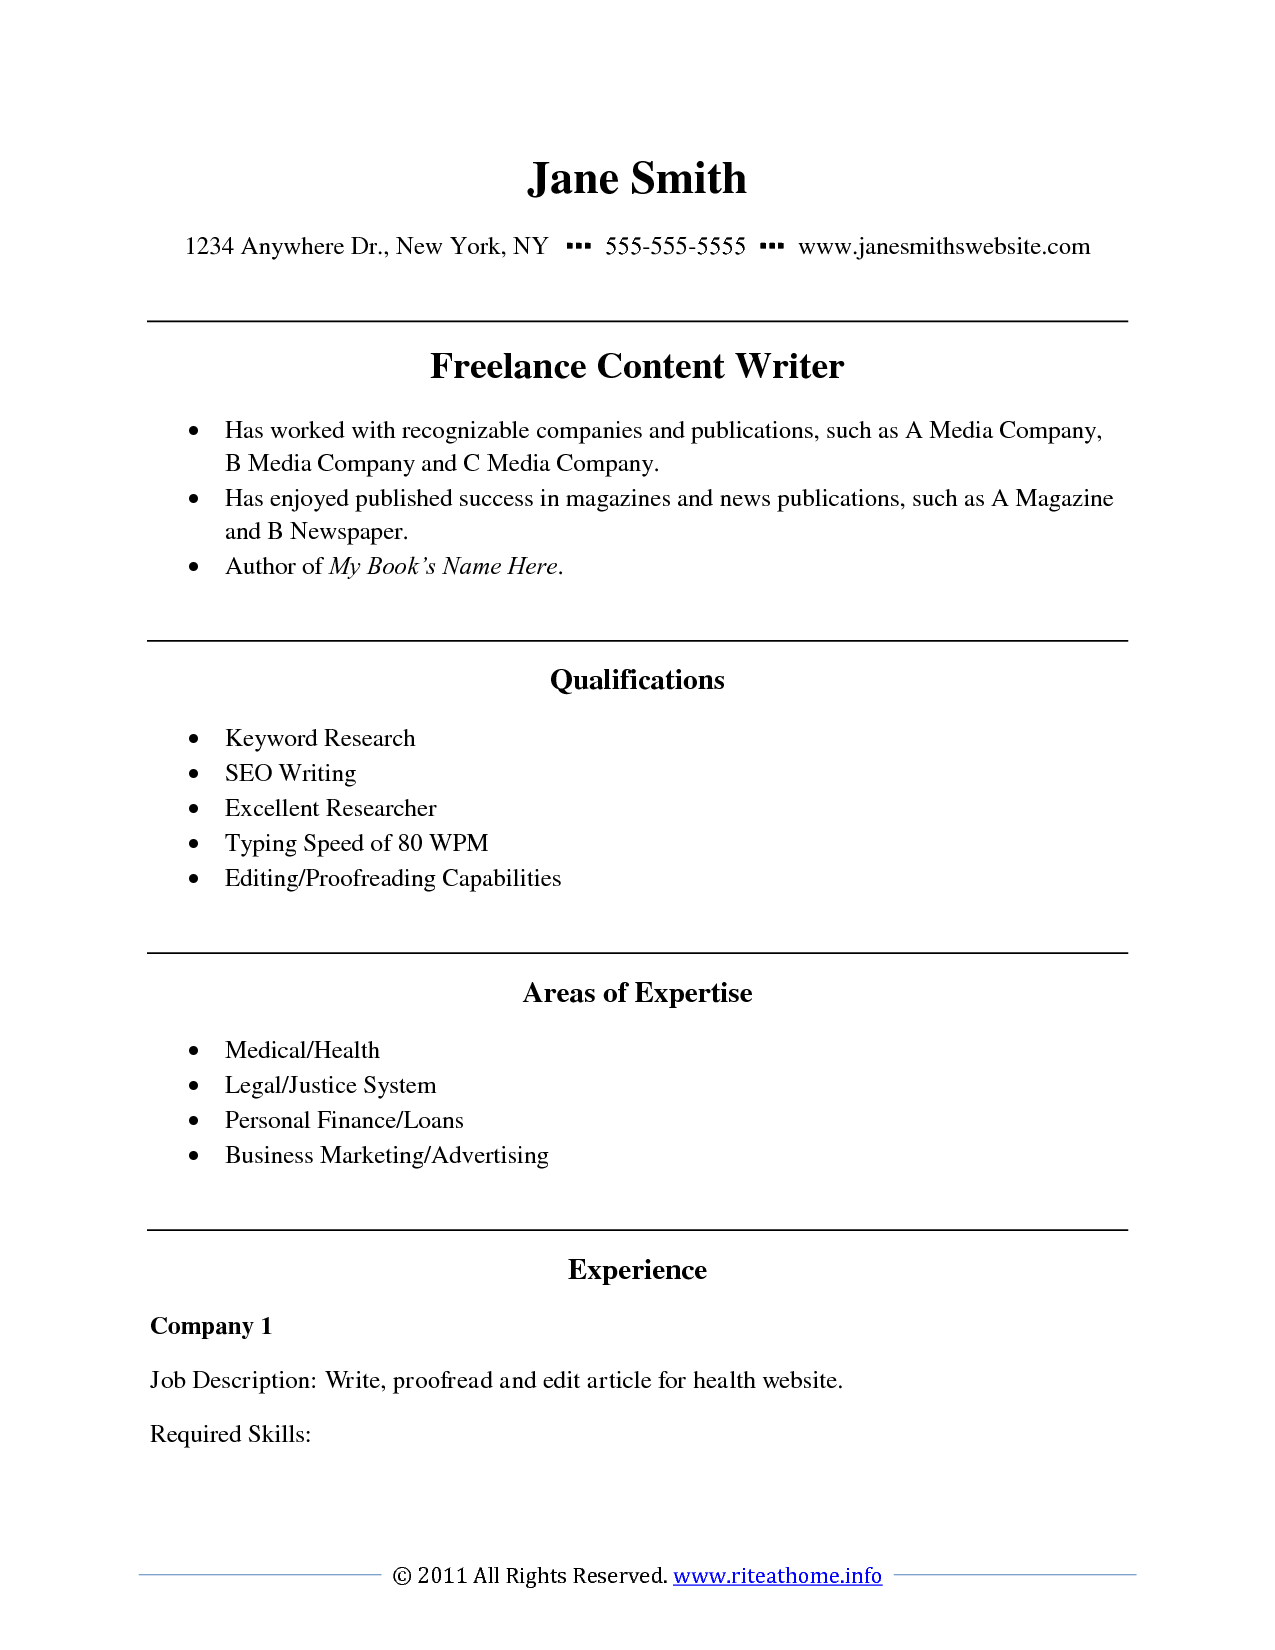 resume writing examples sample resumes hdwriting a resume cover letter examples - What To Write On A Resume Cover Letter